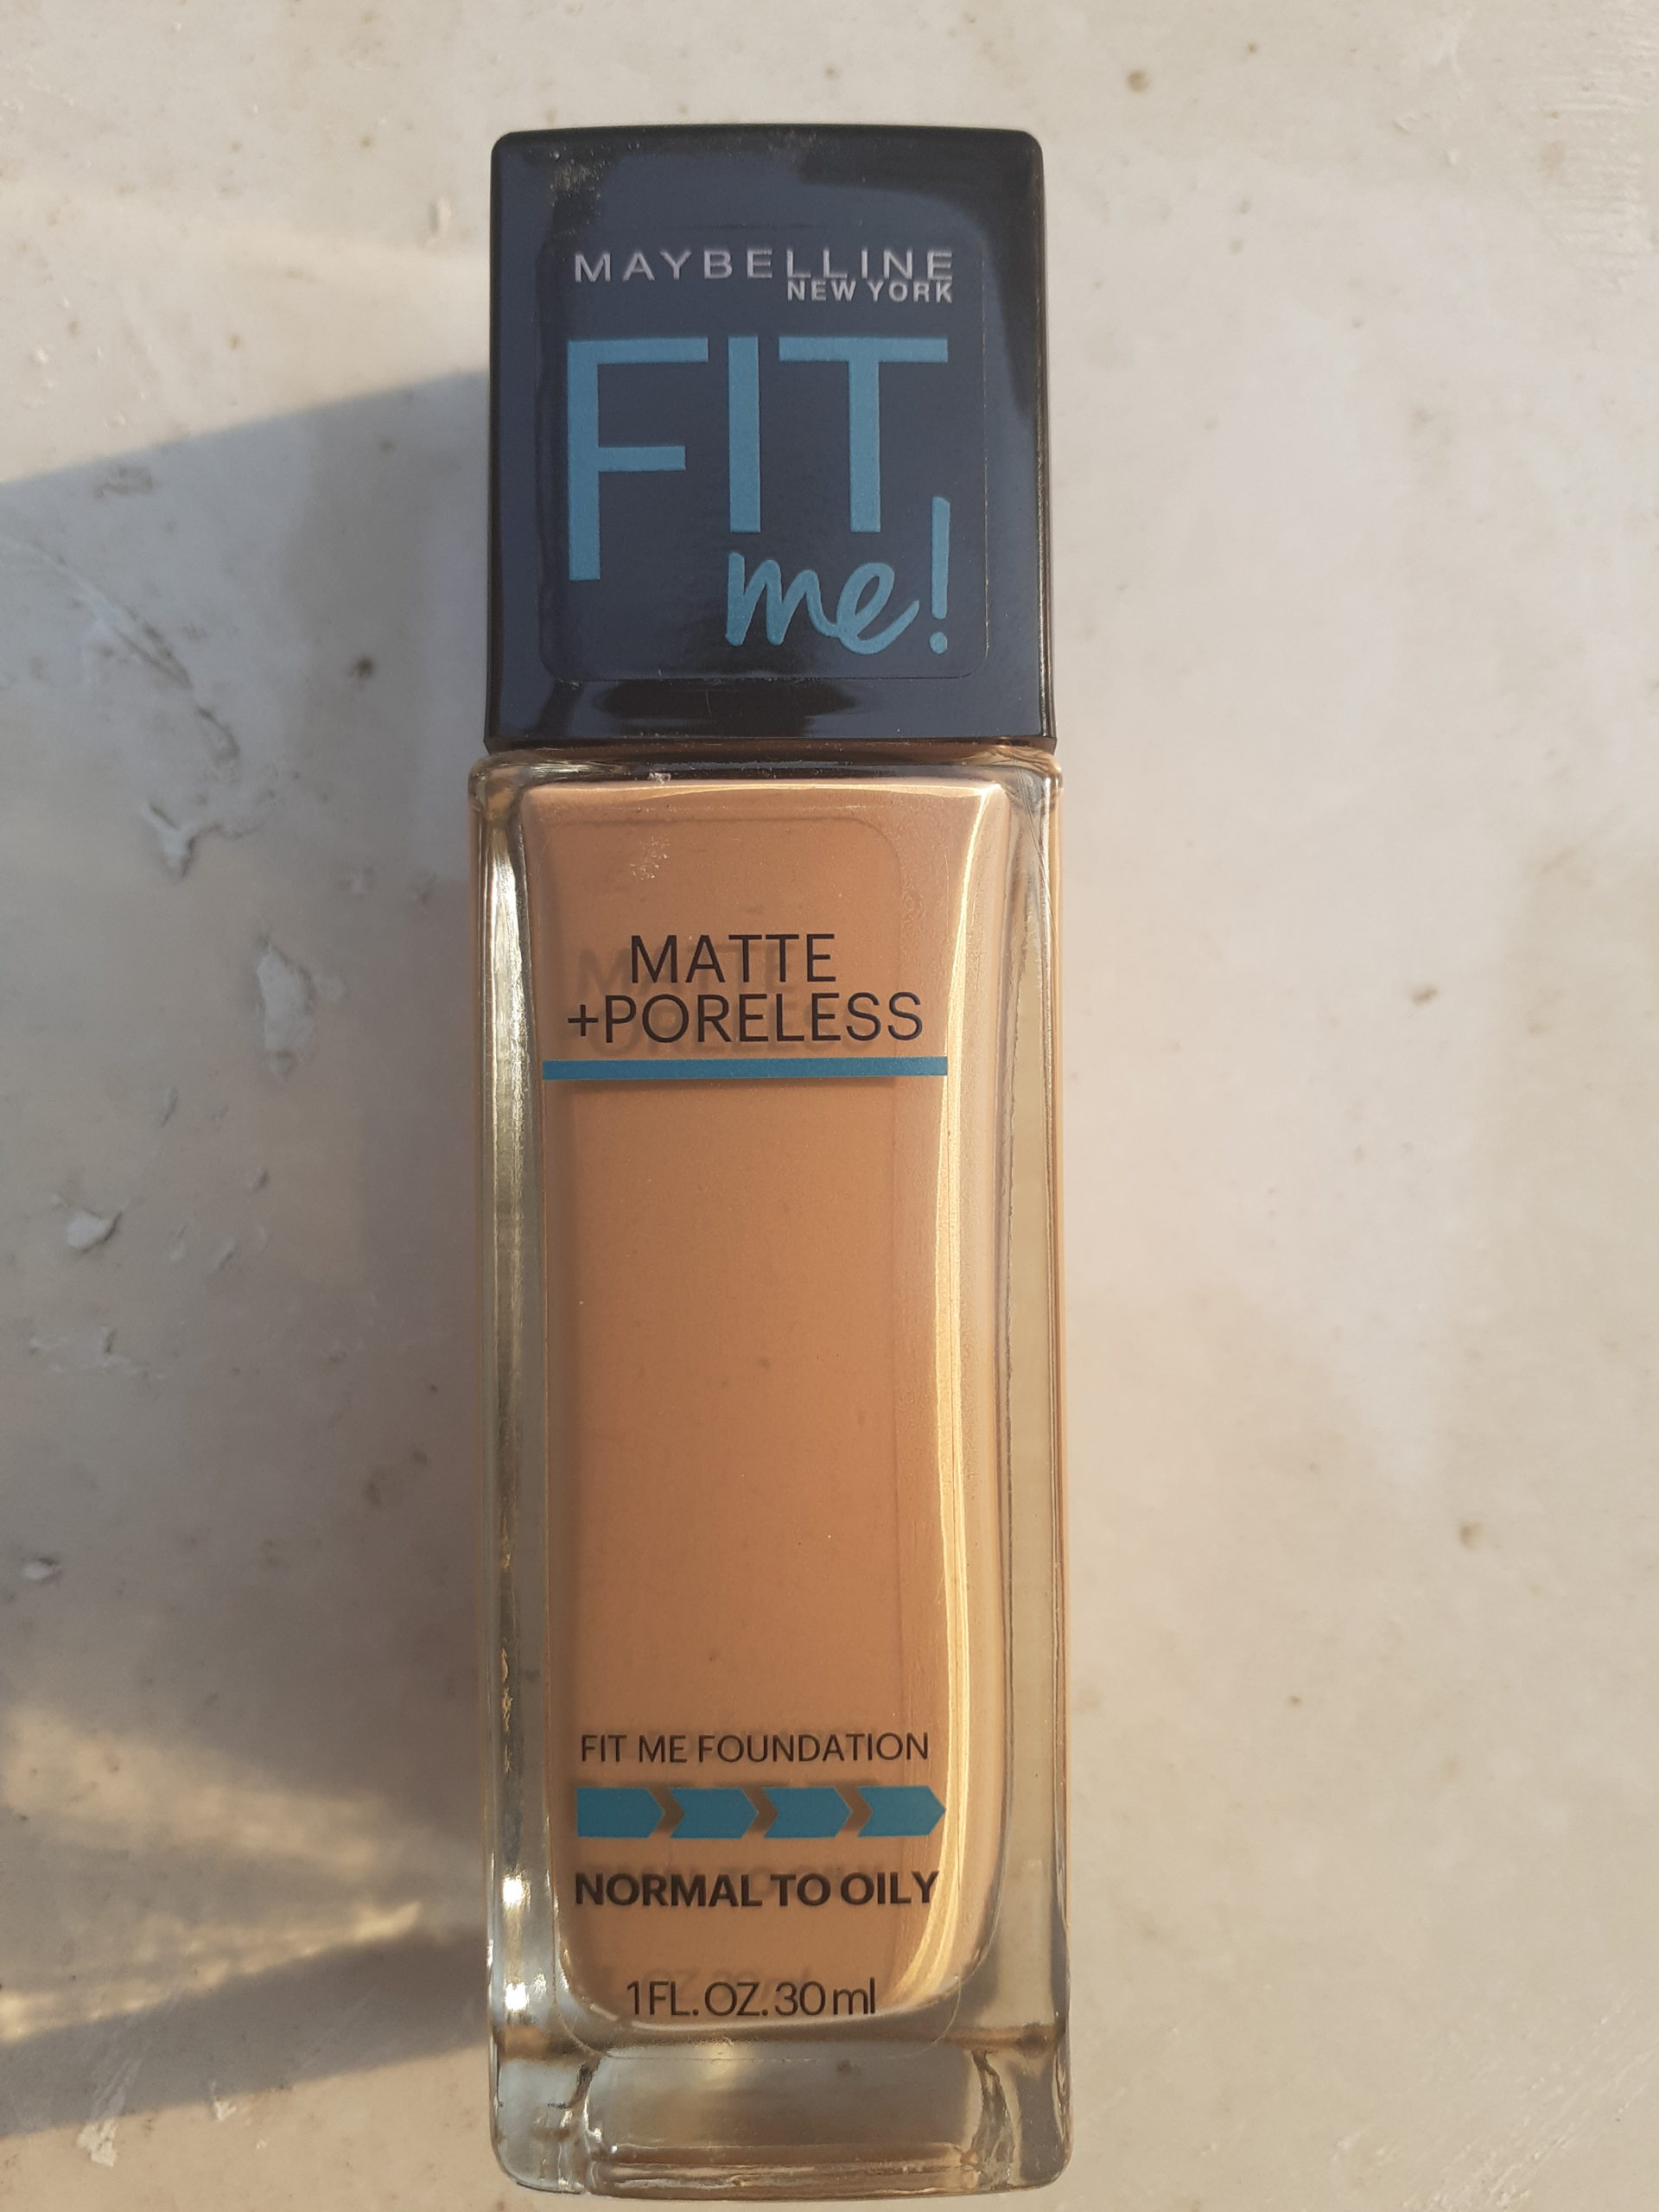 Maybelline Fit Me Matte+ Poreless Foundation Review